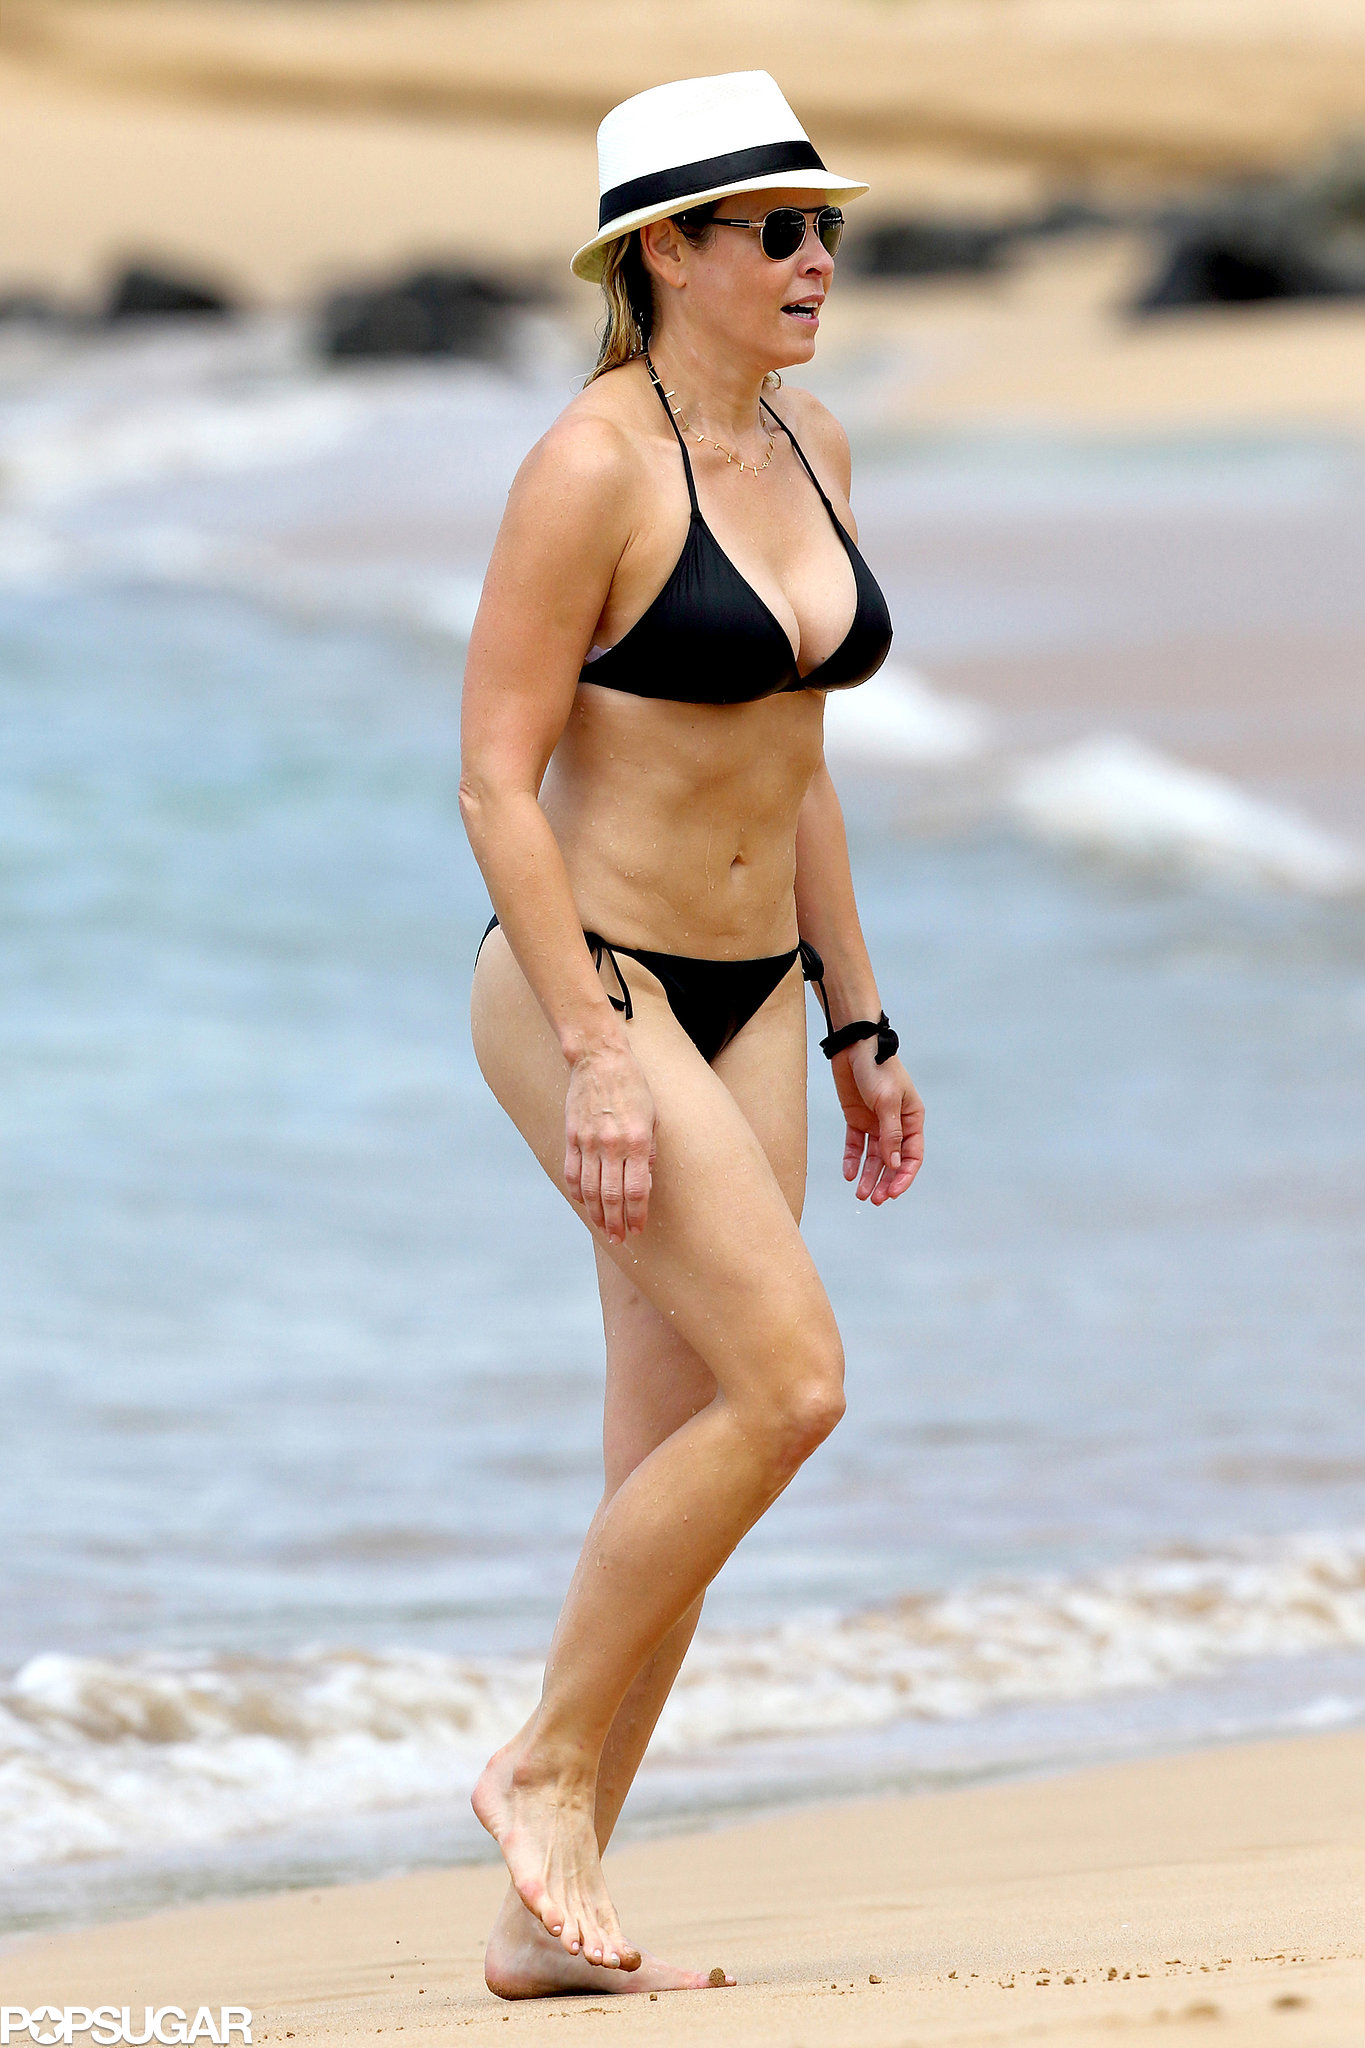 With her slim body and Regular blond hairtype without bra (cup size 34C) on the beach in bikini